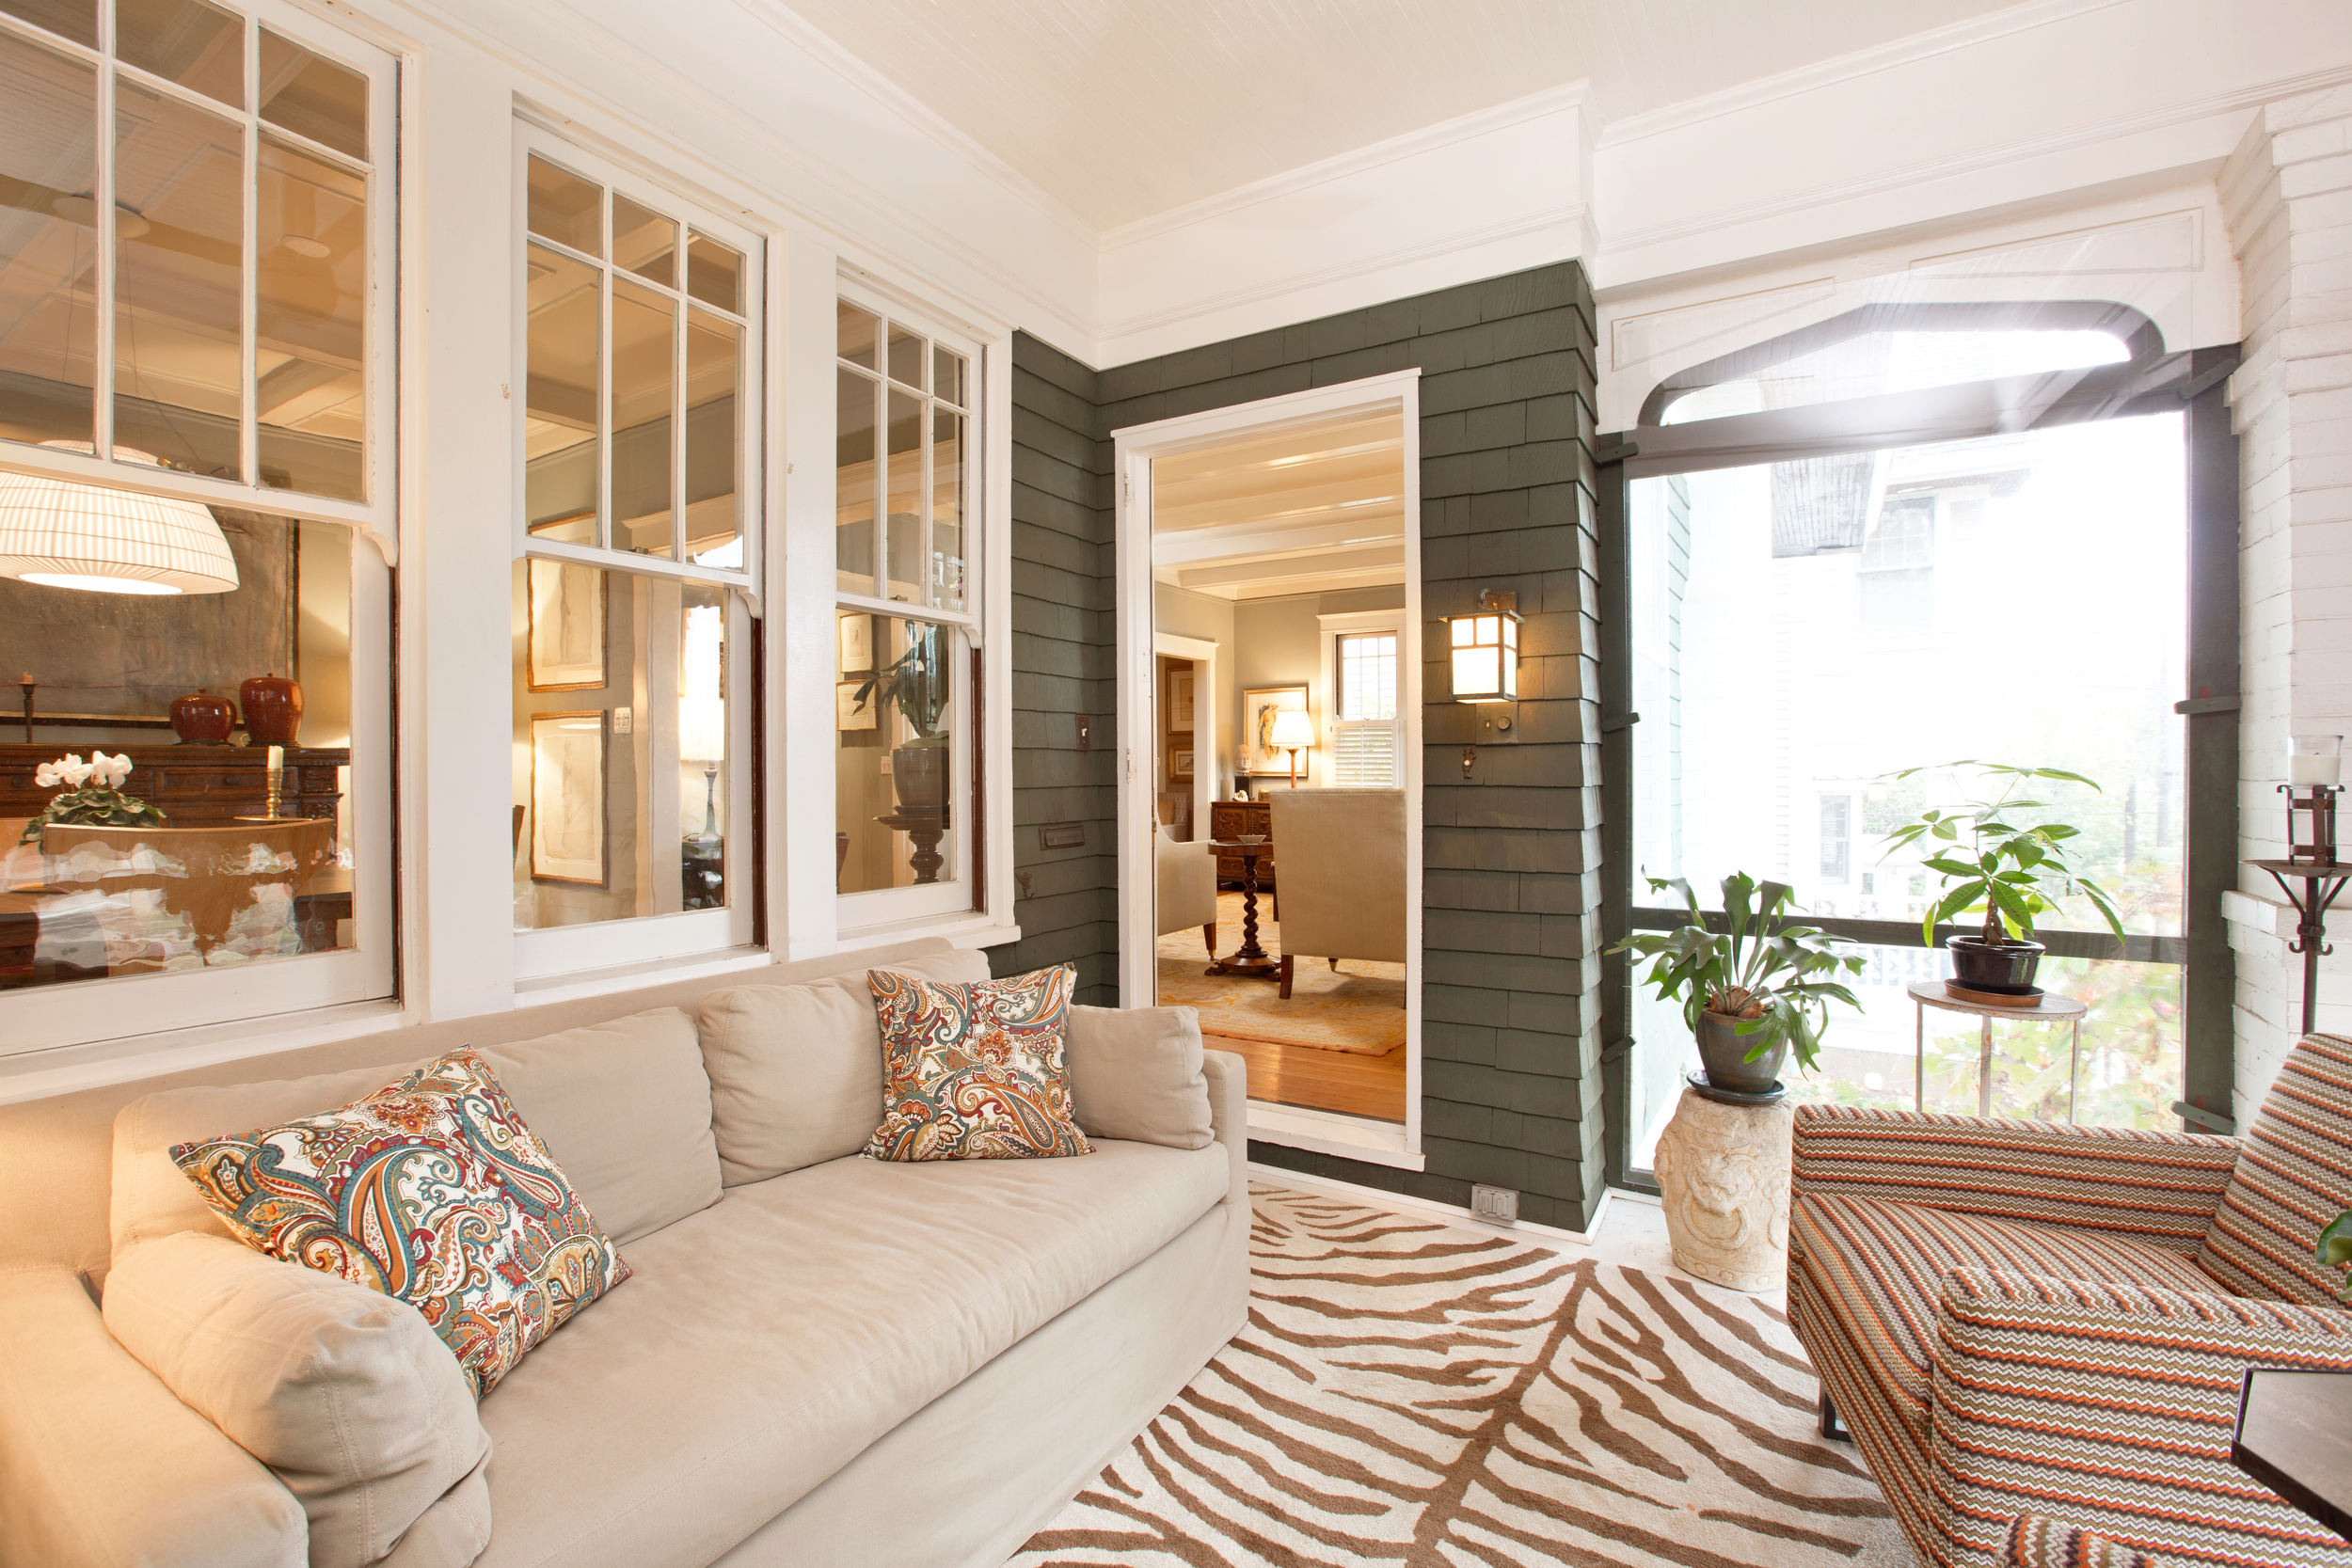 """We may have to break our """"no loitering"""" rule for this   screened   porch.  E  ase   (all fabrics are outdoor rated)  and sophistication   combine to make this    one heck of a relaxing,  bright and   welcoming  space  to while away summer days."""